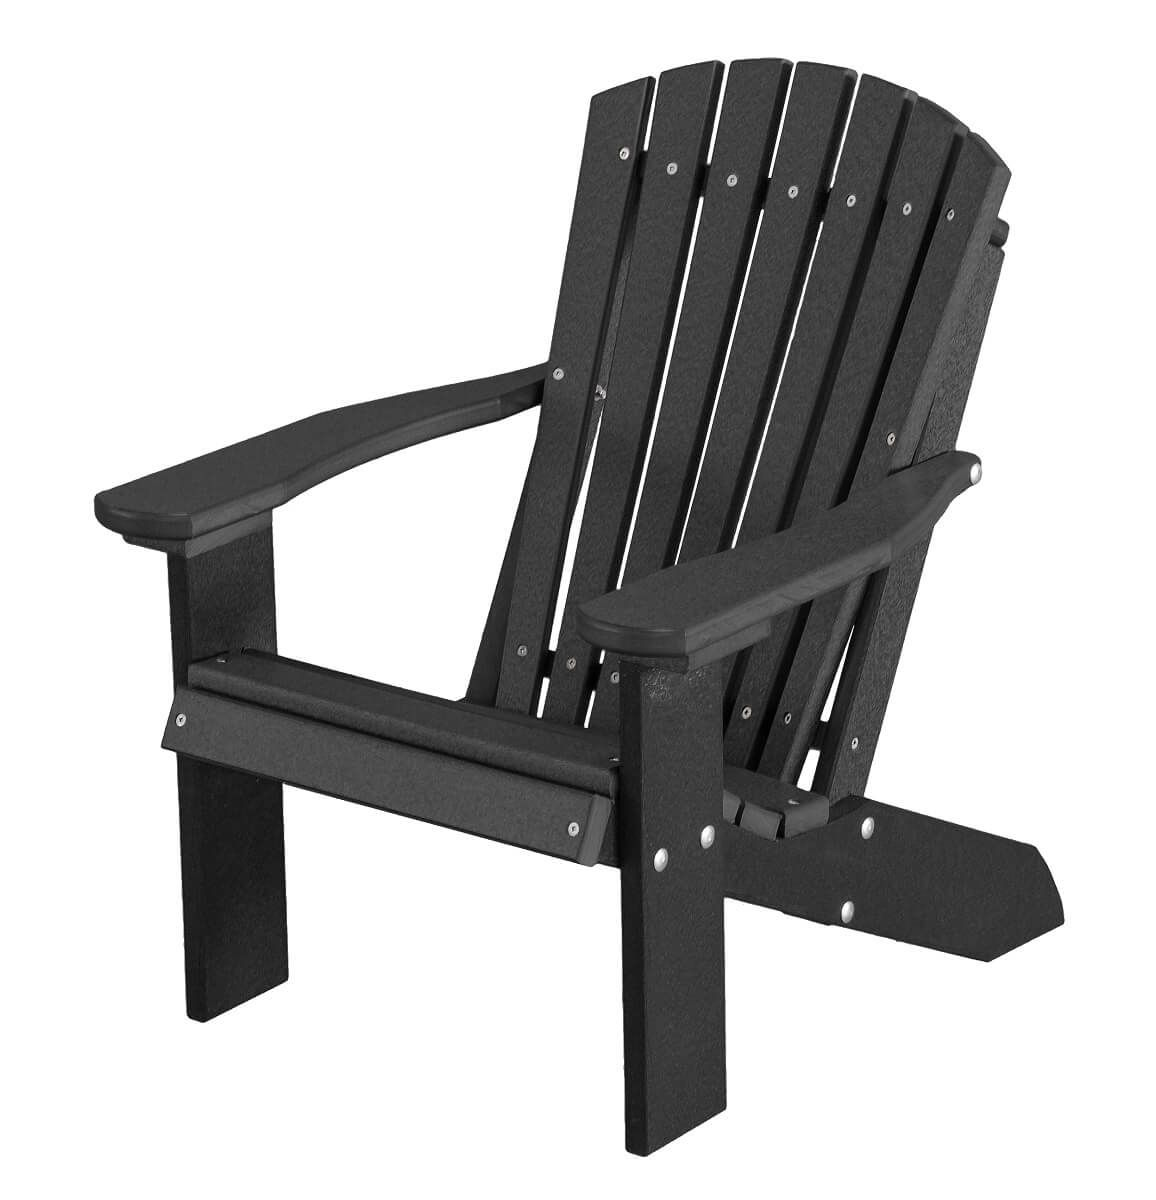 Black Sidra Child's Adirondack Chair